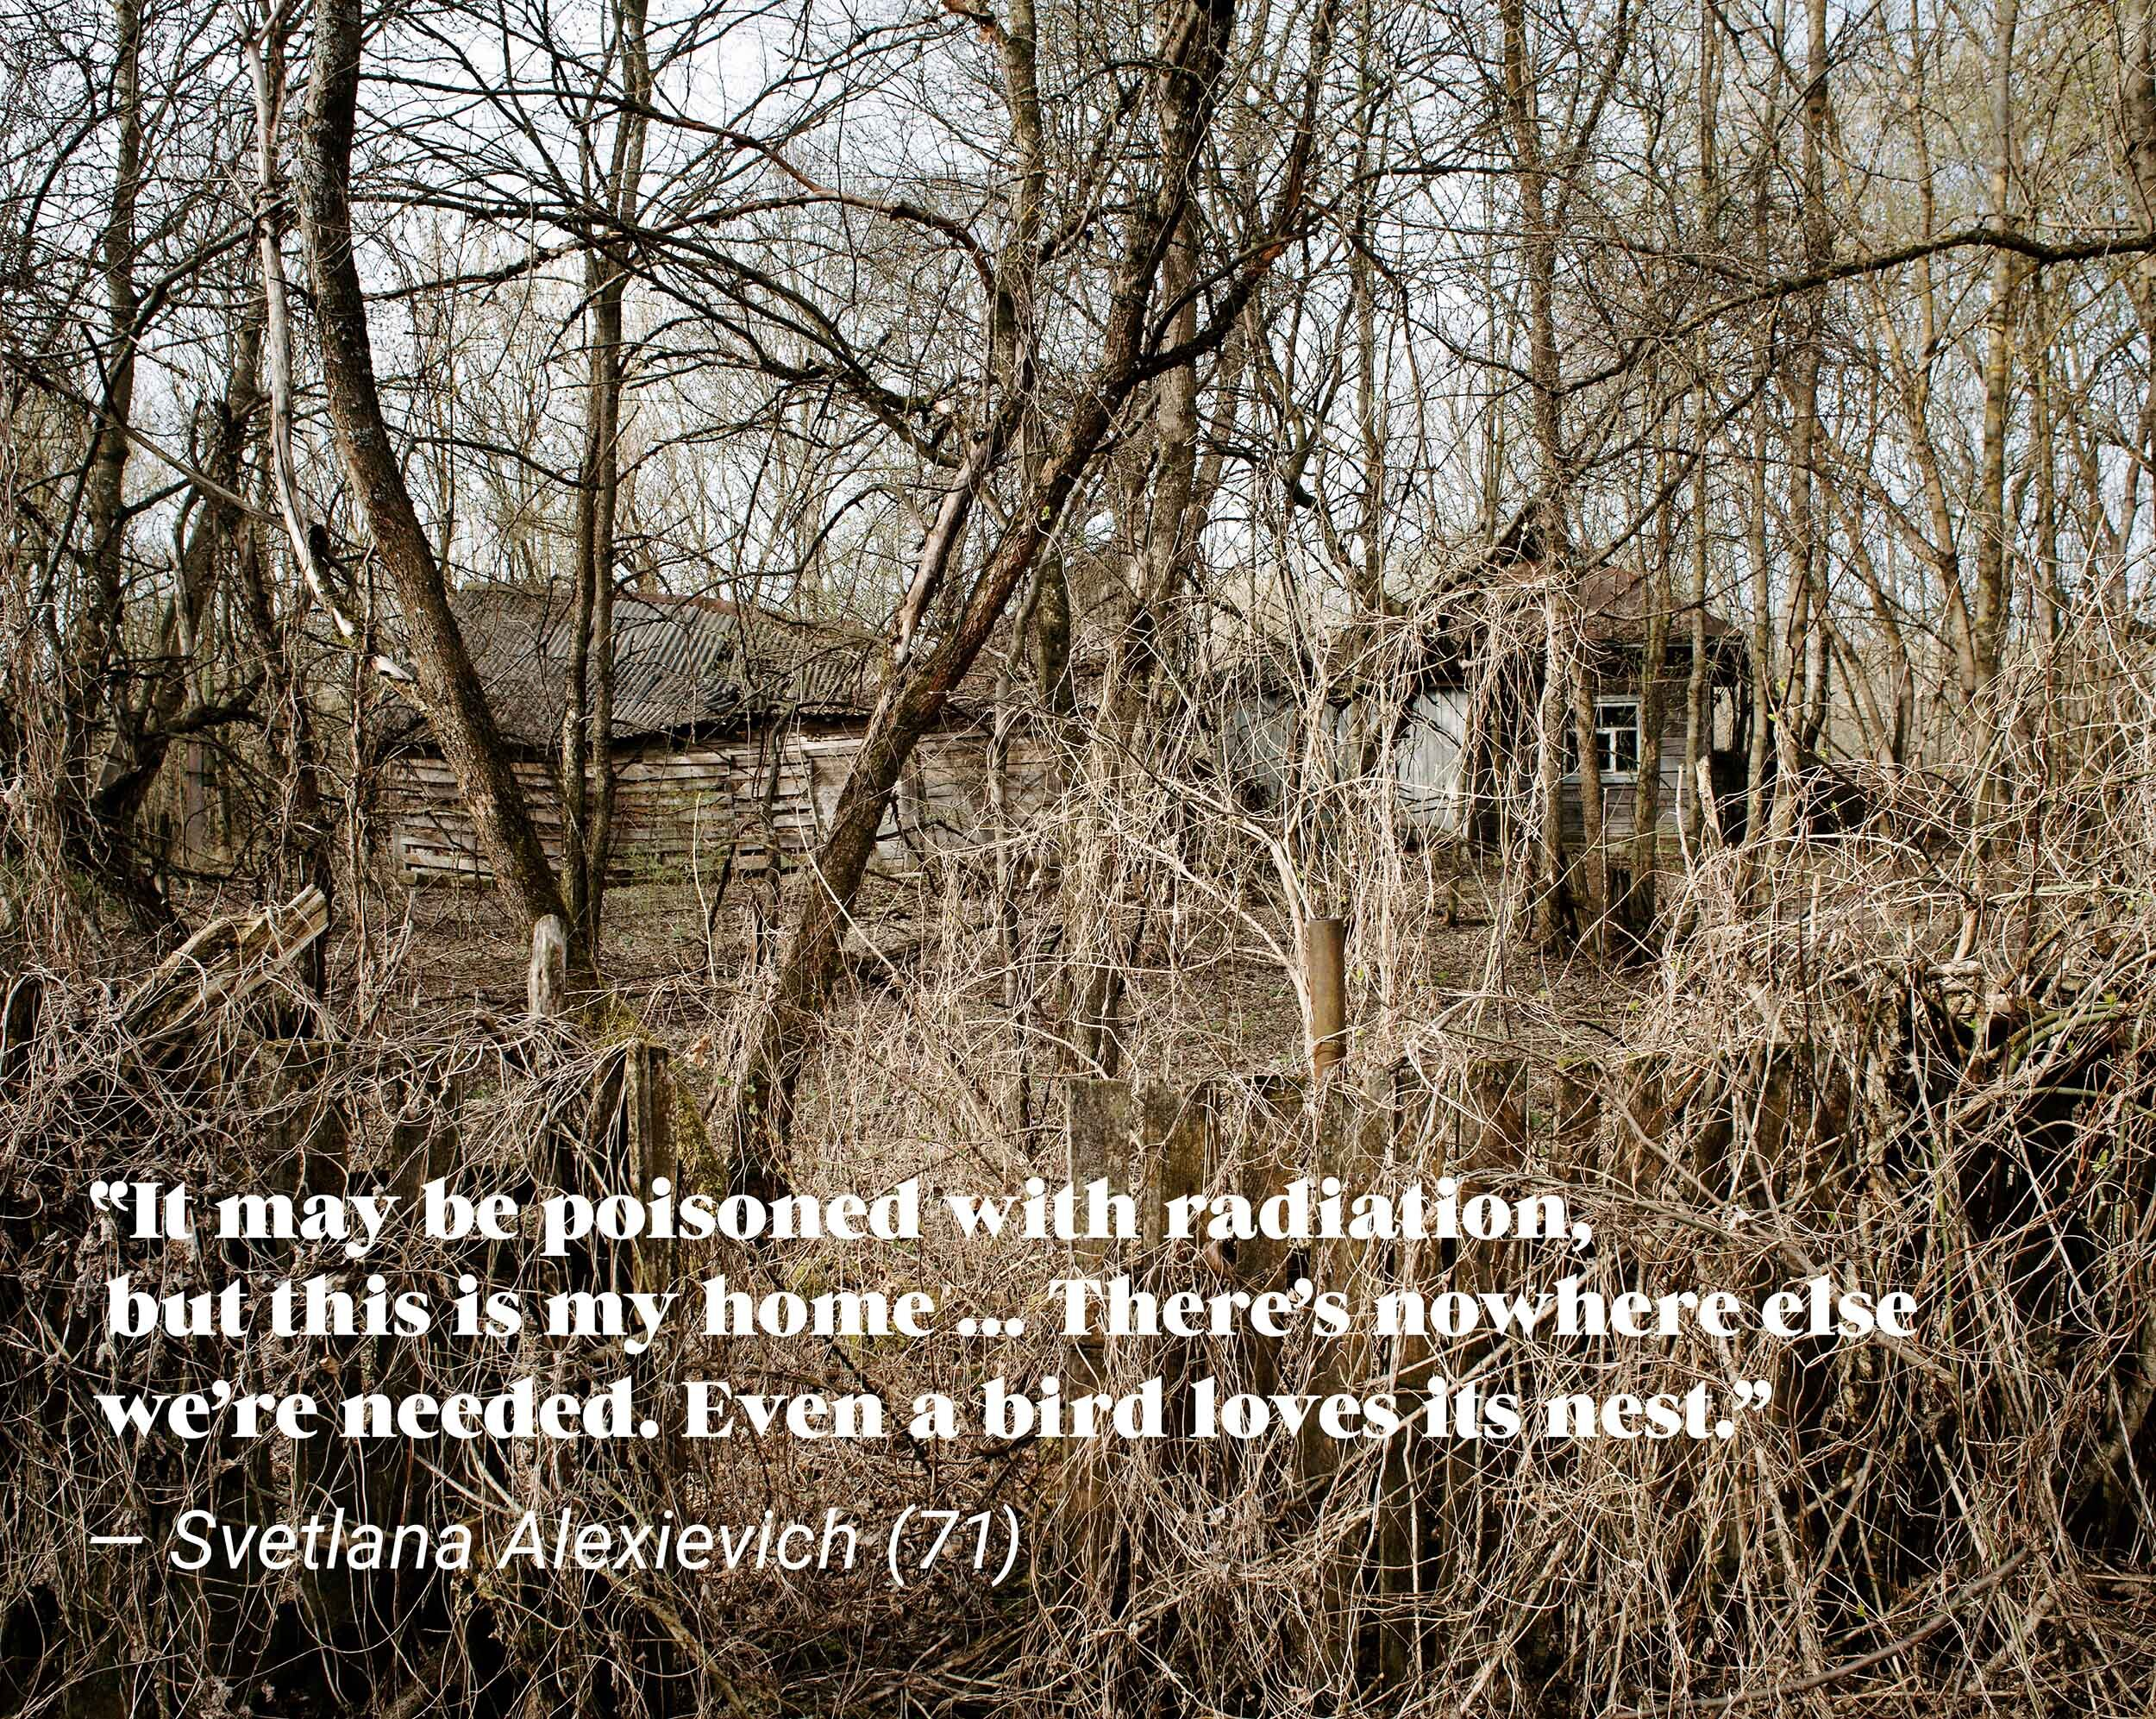 ⎯ Abandoned home in the Chernobyl (Chornobyl) Exclusion Zone.